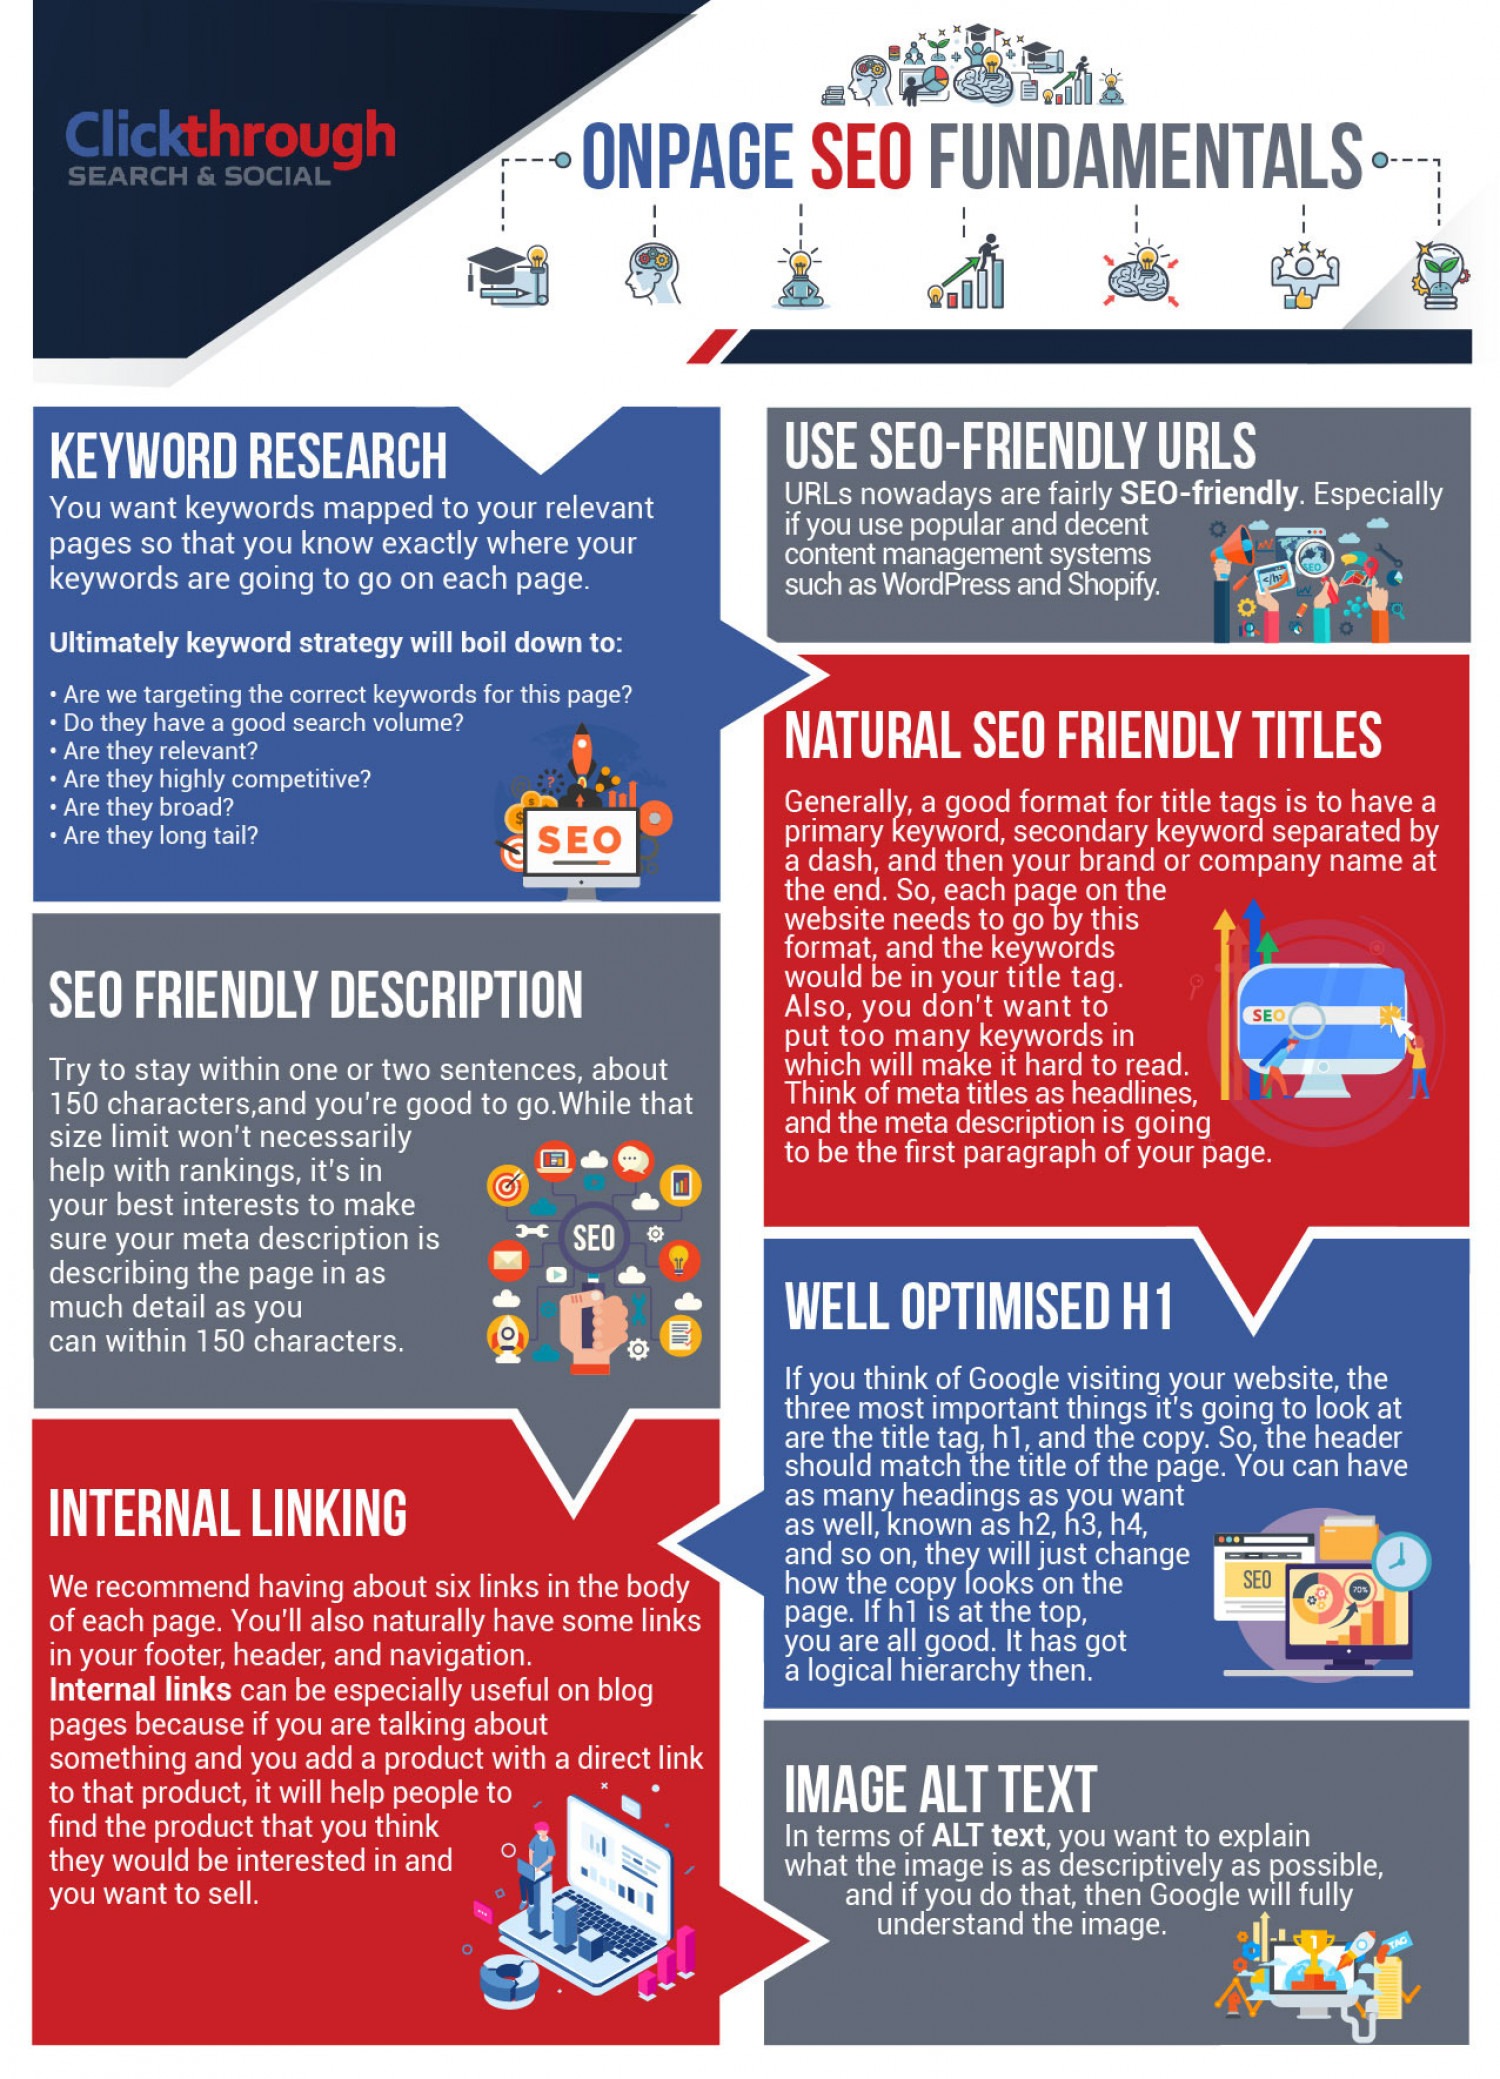 Onpage SEO fundamentals from Click Cast team Infographic